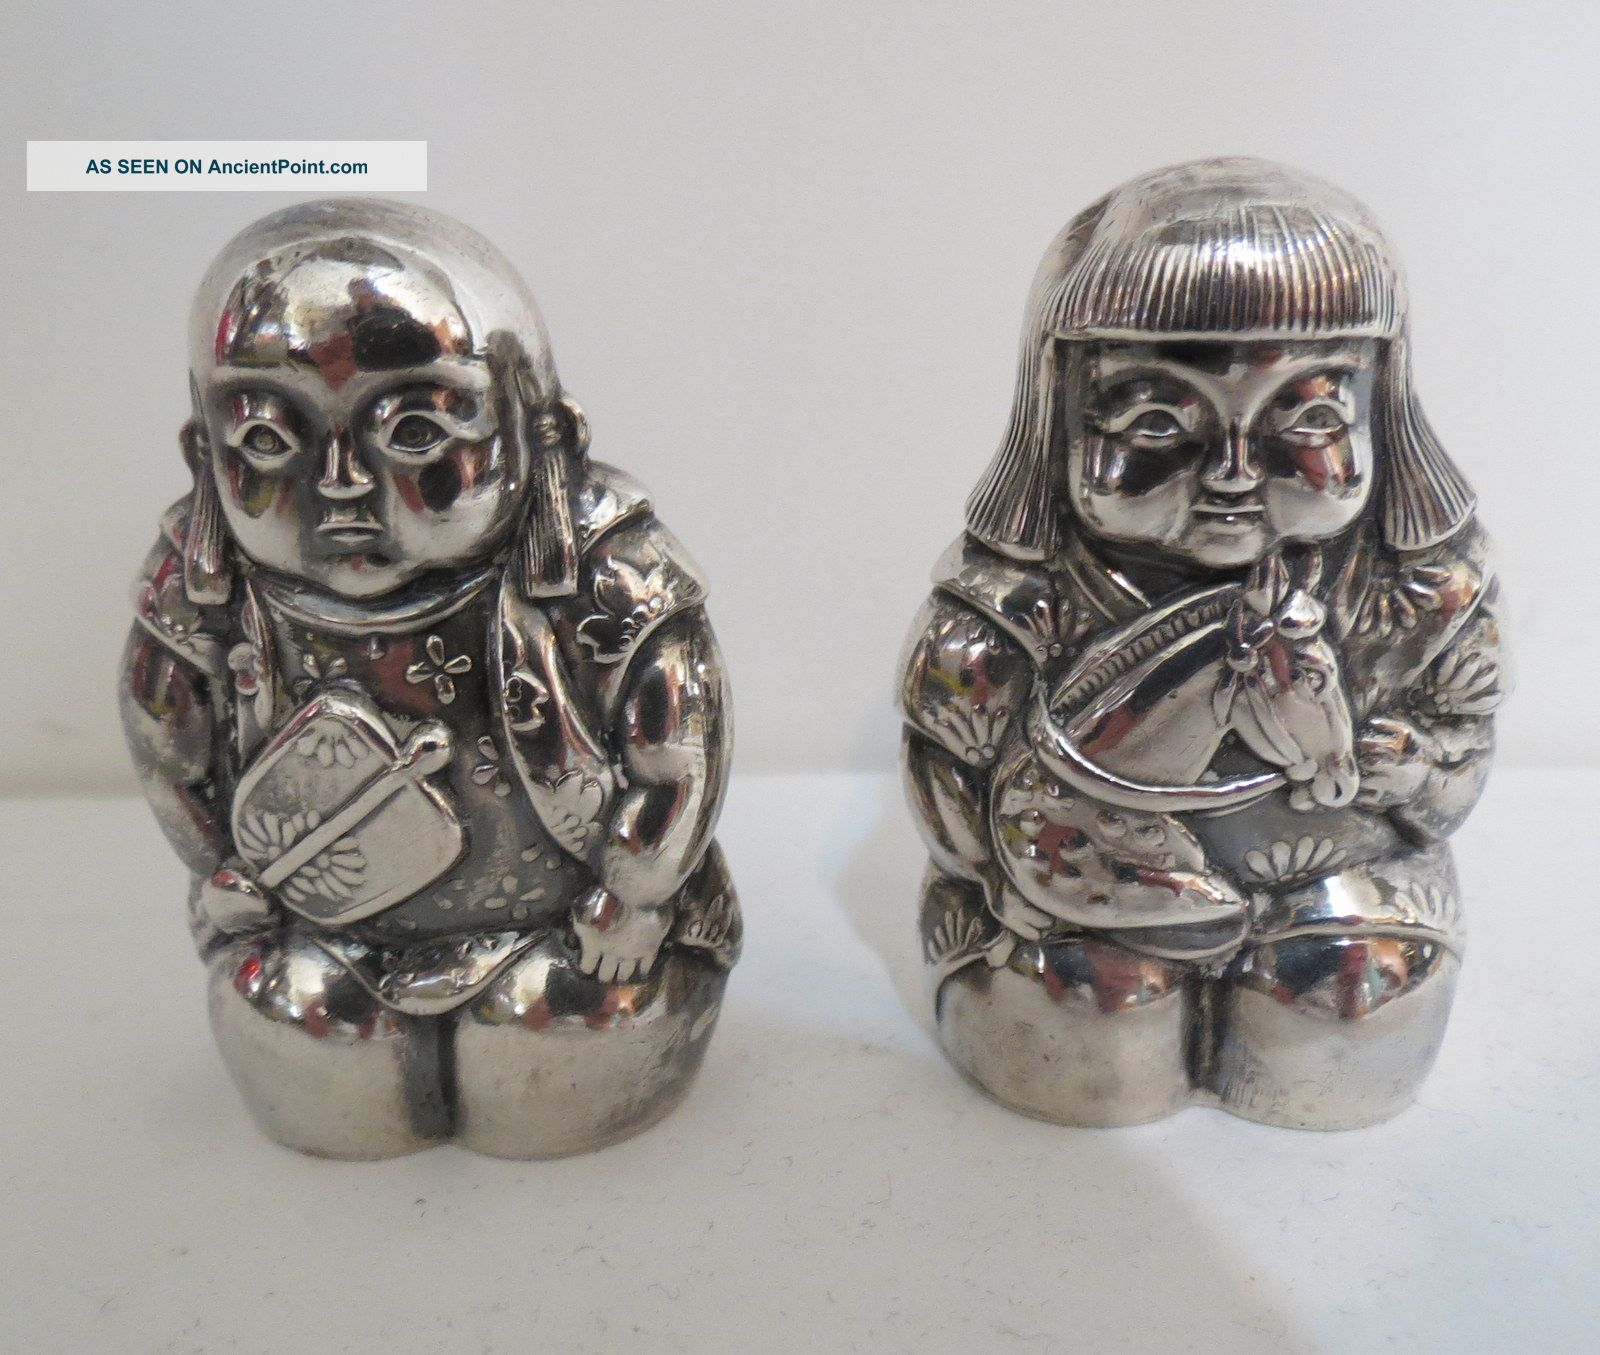 Vintage 950 Sterling Silver Japanese Boy & Girl Salt & Pepper Shaker Set Sweet Asia photo